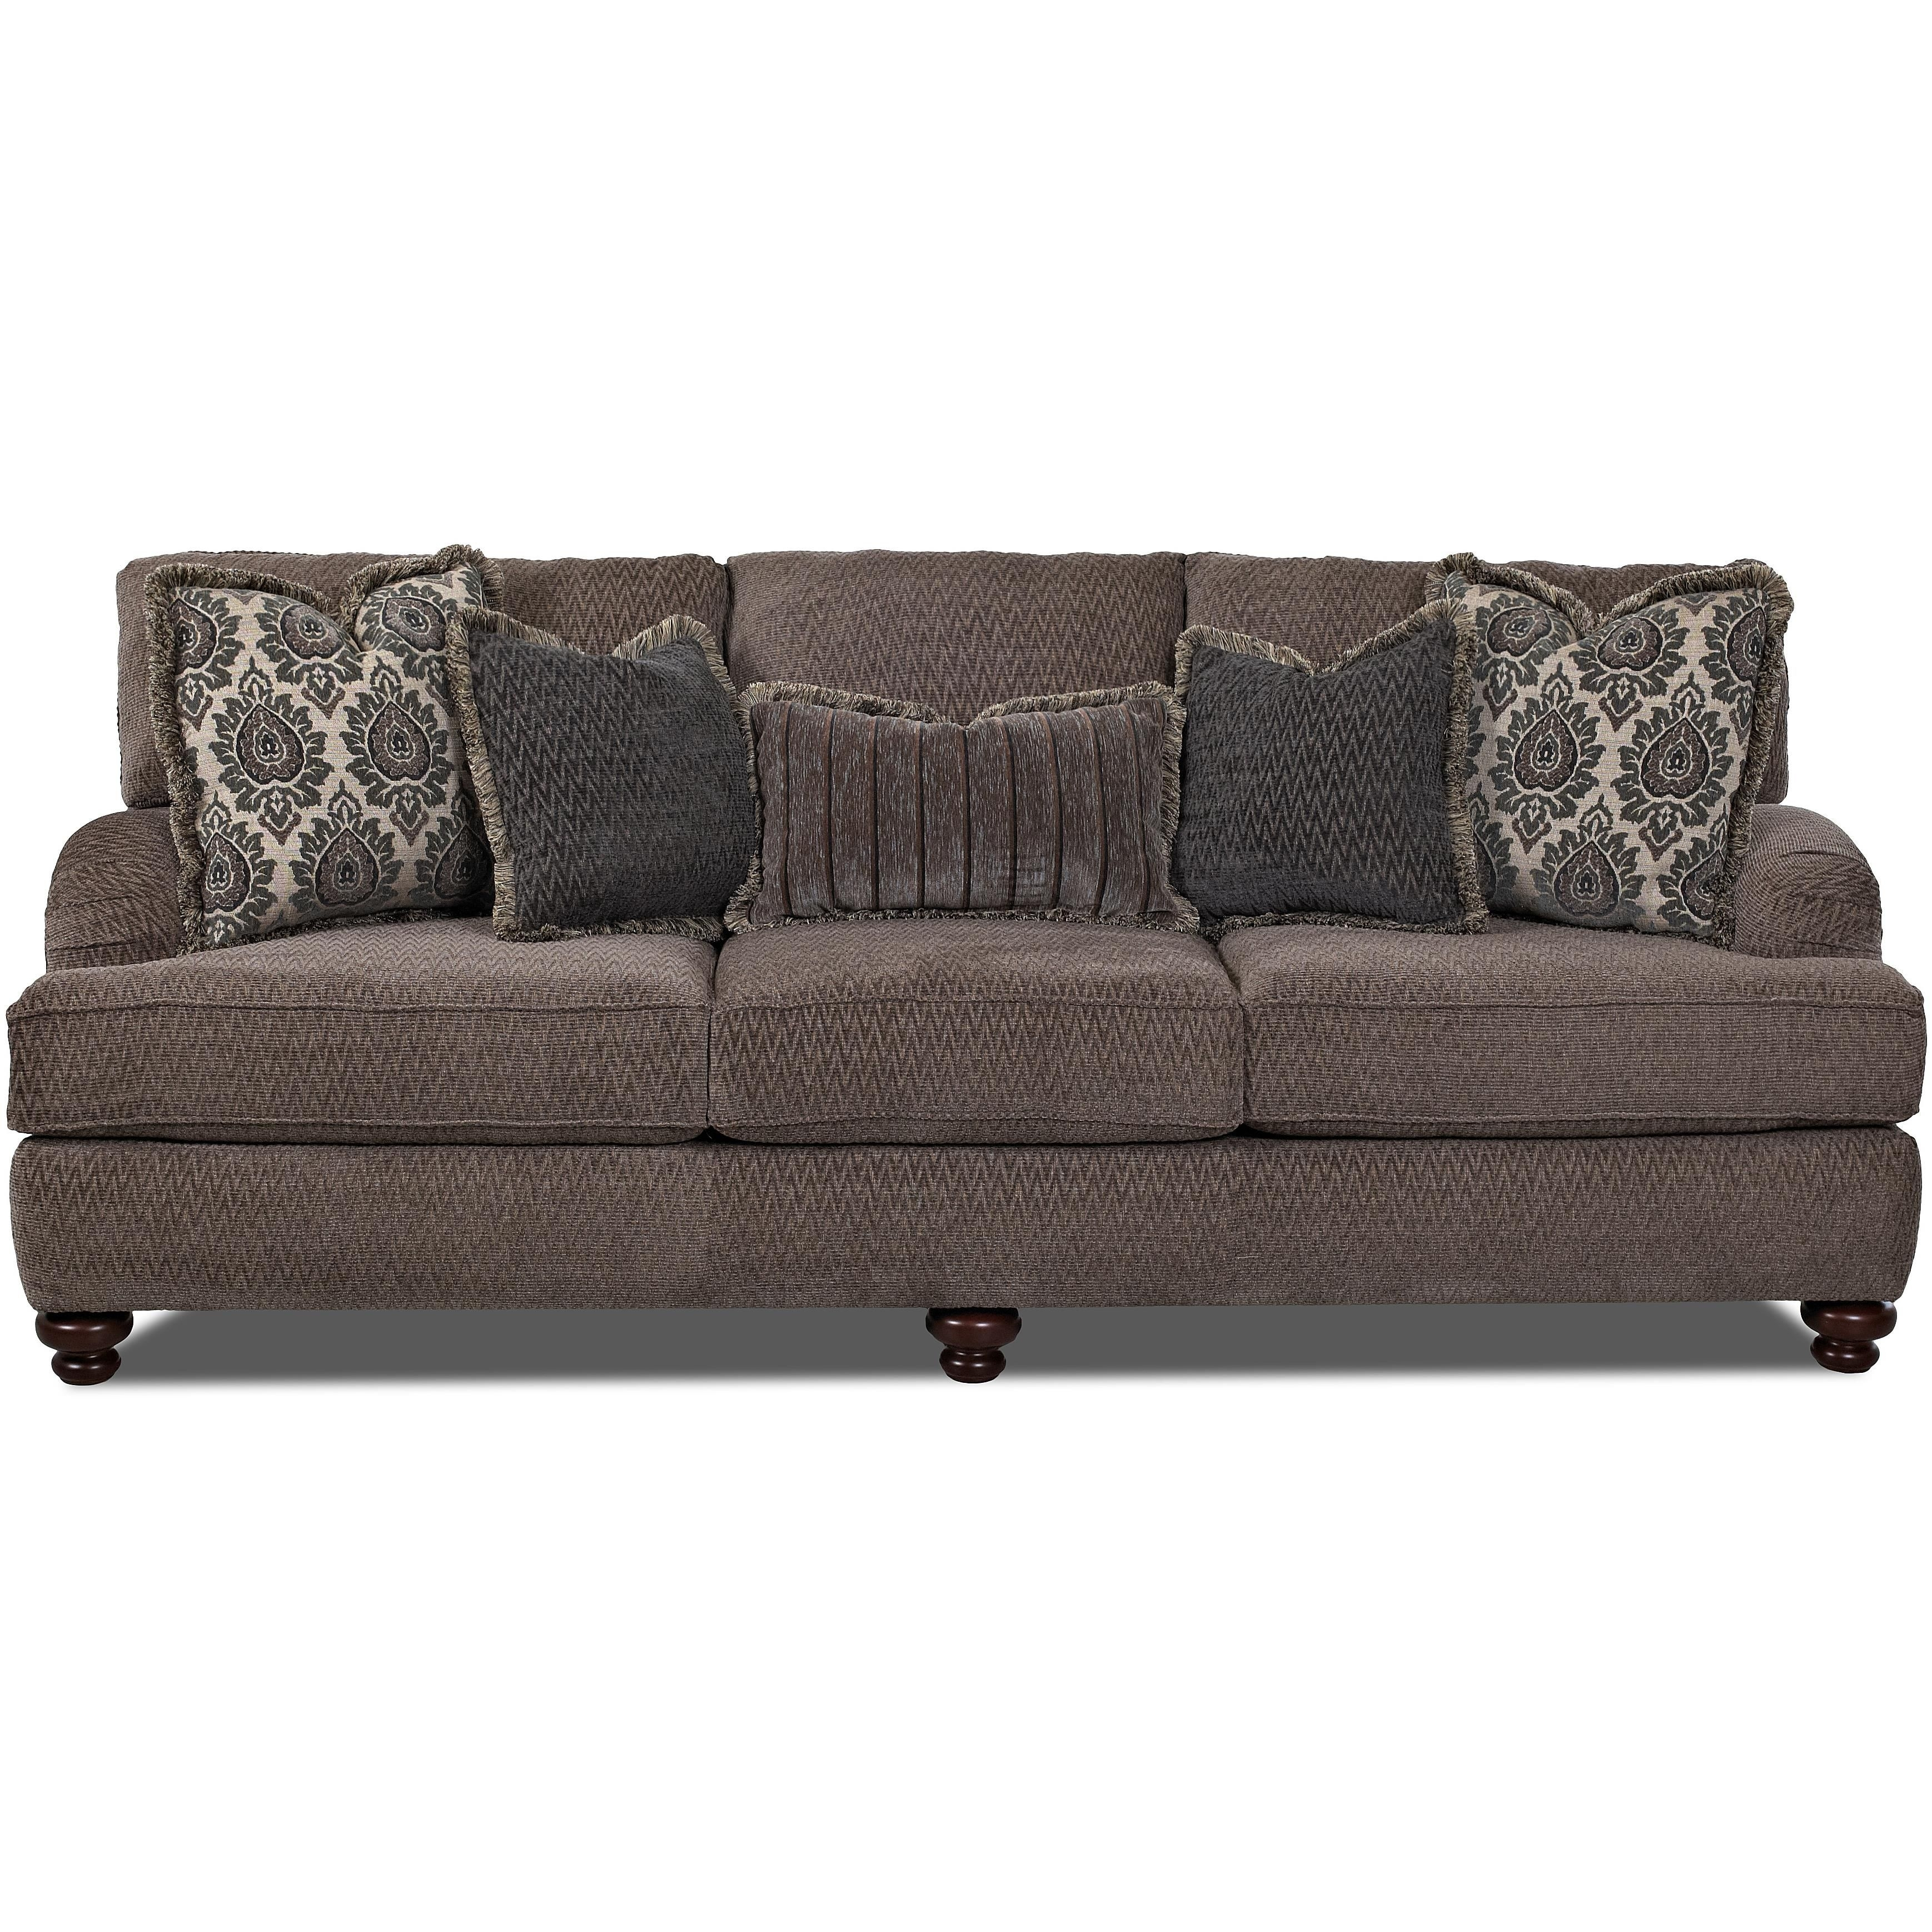 Pinlynea Redman On Living Room | Pinterest | Traditional, Living In Declan 3 Piece Power Reclining Sectionals With Right Facing Console Loveseat (View 4 of 25)